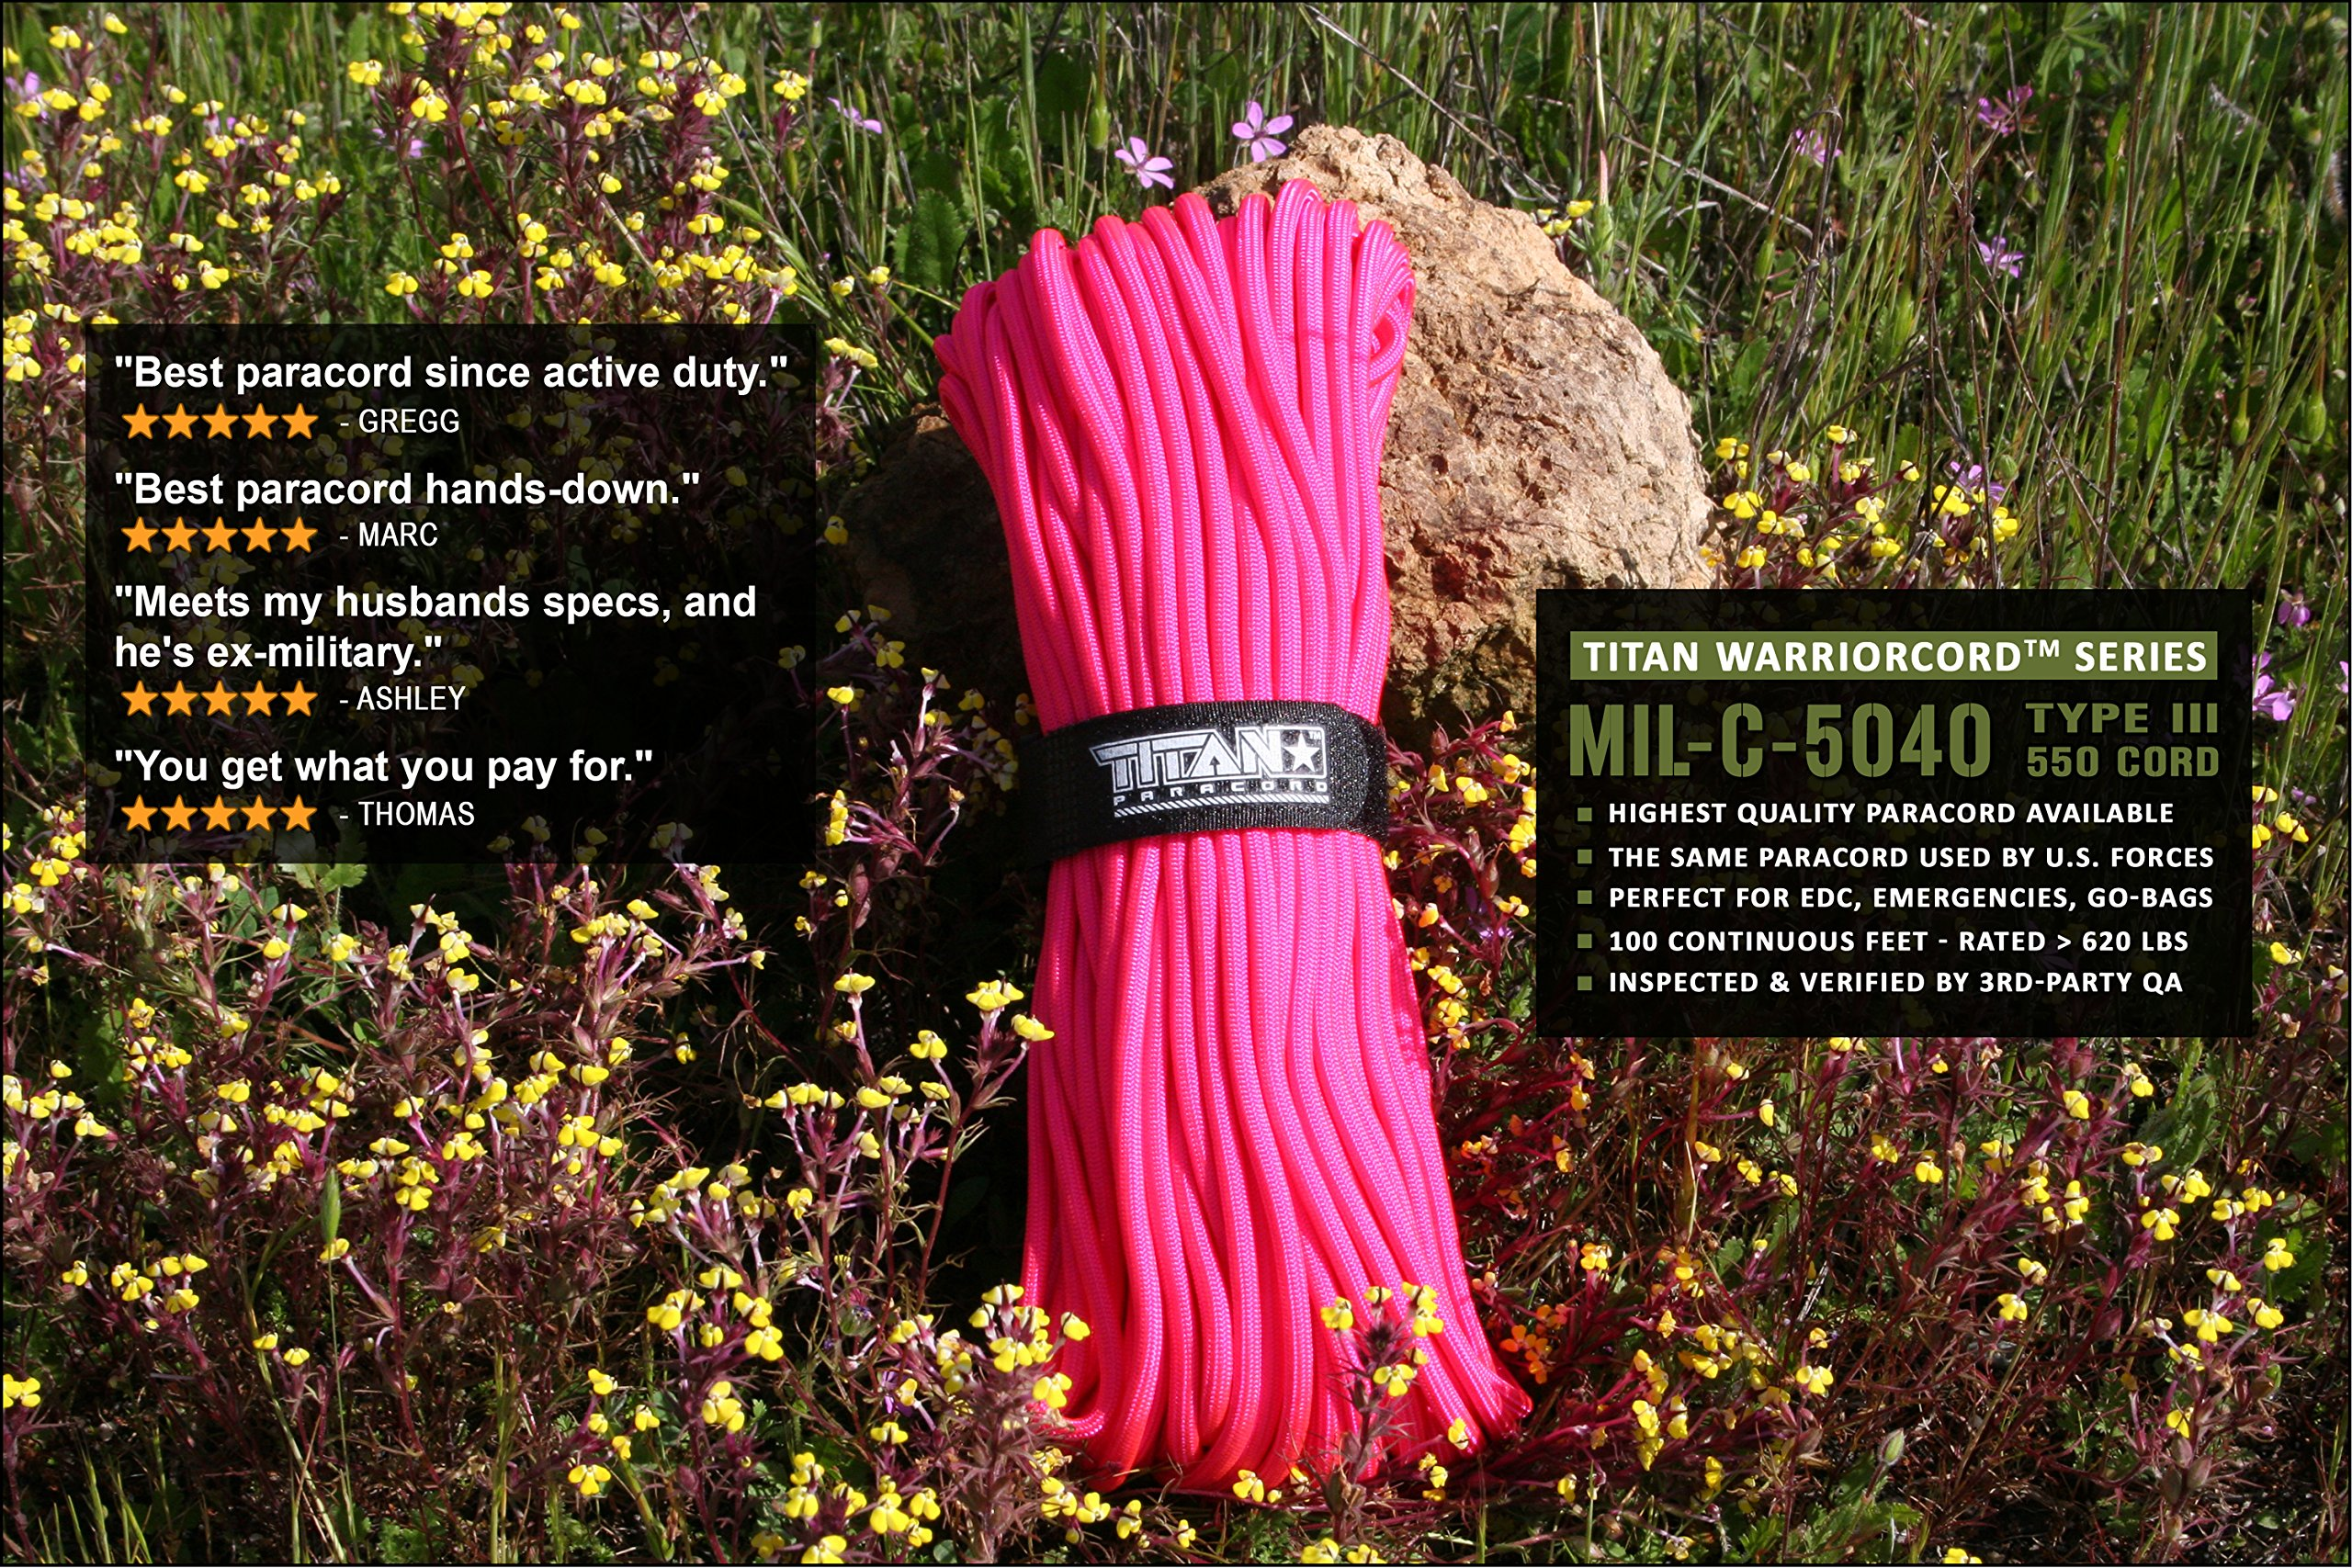 TITAN WarriorCord | PINK | 103 CONTINUOUS FEET | Exceeds Authentic MIL-C-5040, Type III 550 Paracord Standards. 7 Strand, 5/32'' (4mm) Diameter, Military Parachute Cord. by Titan Paracord (Image #3)